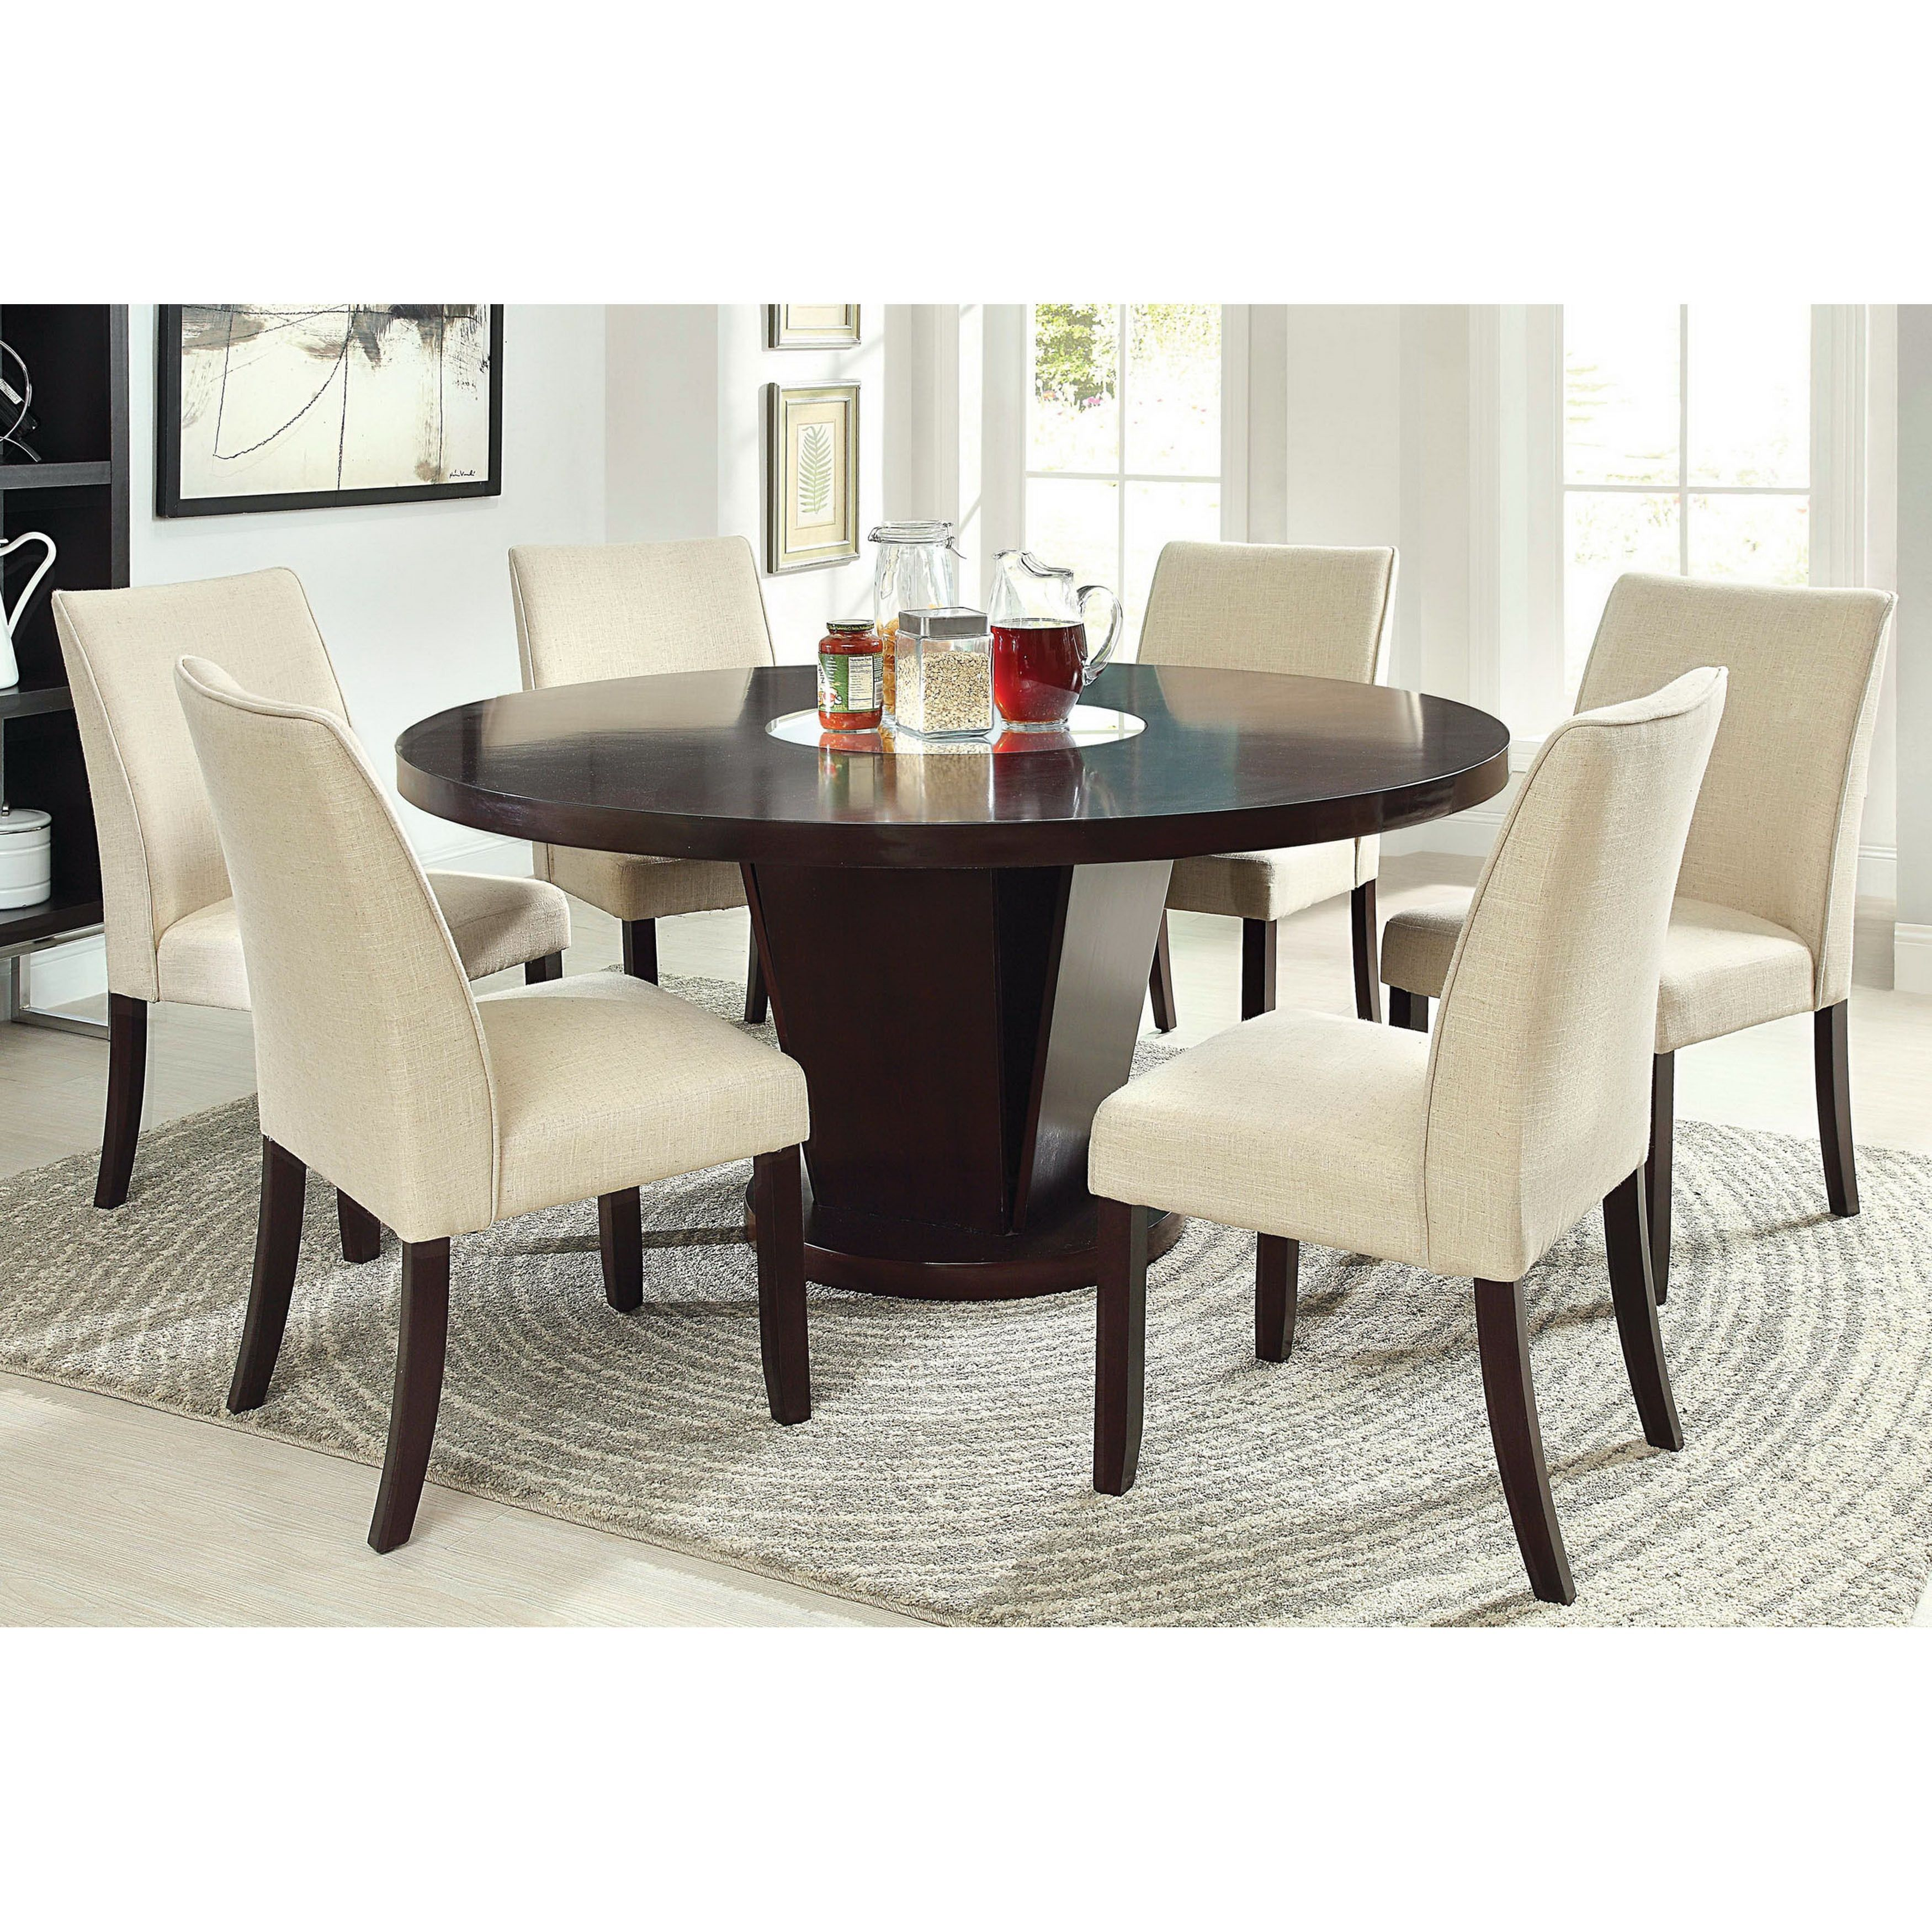 Contemporary Style Dining Set That Offers A Huge 60 Inch Round Table With Center Mirror Accent Supported Unique Sy Pedestal Supports